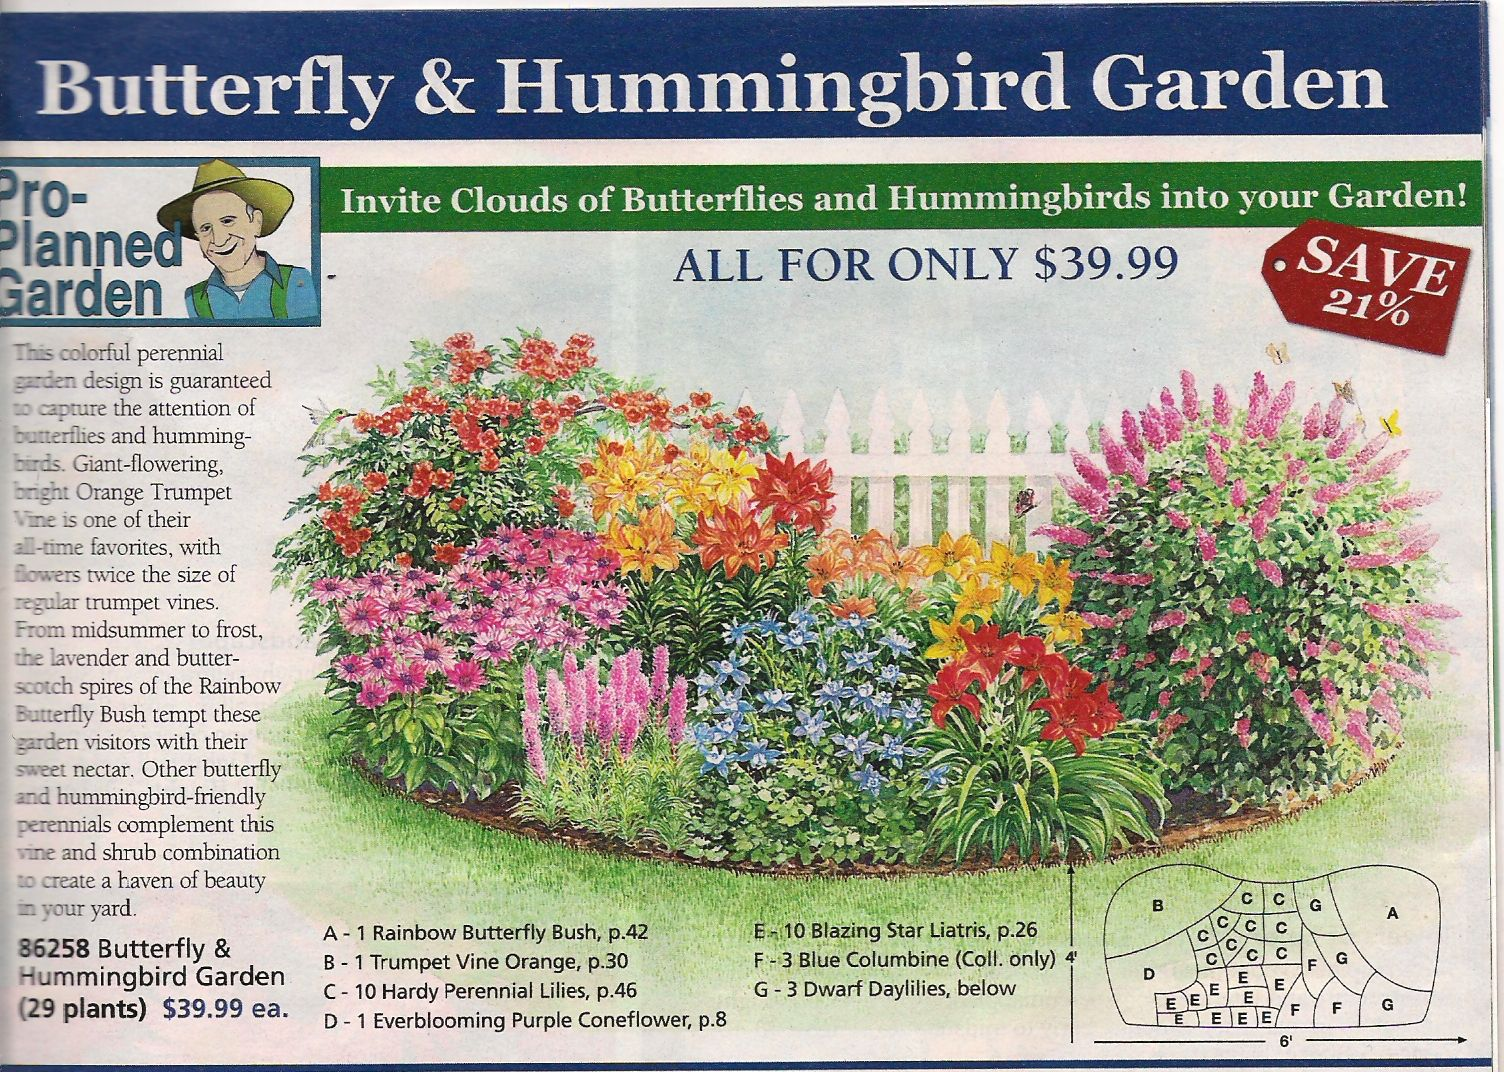 Garden plan from michigan bulb co for a butterfly garden for Garden plans and plants